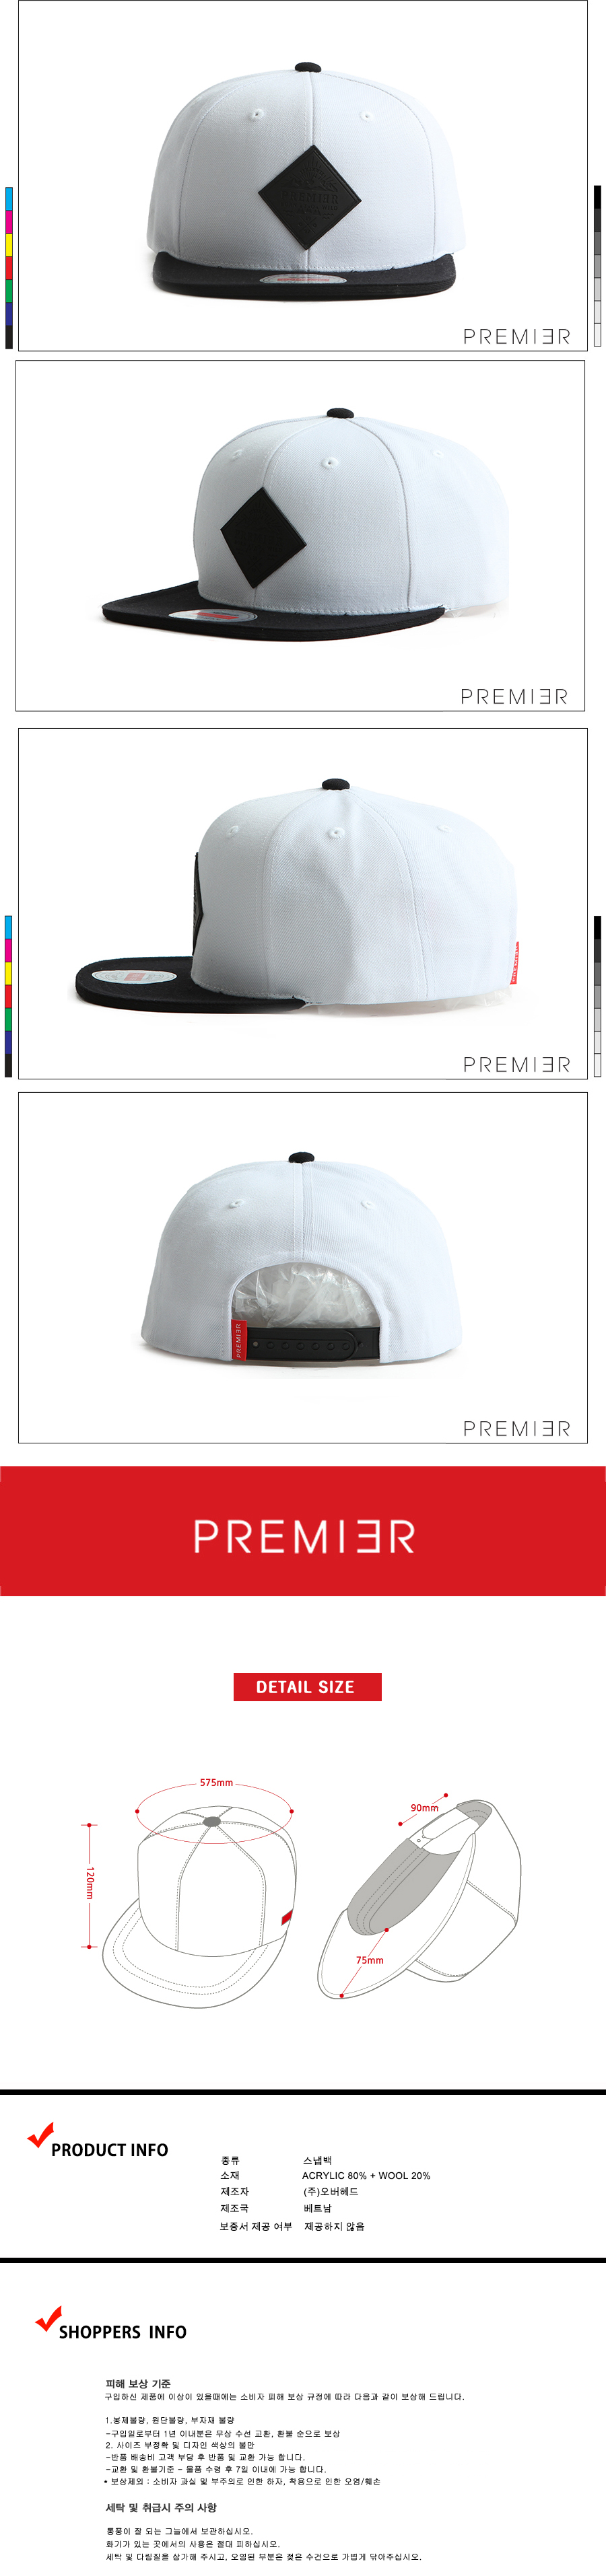 [ PREMIER ] [Premier] Snapback Born To Wild White/Black (P899)